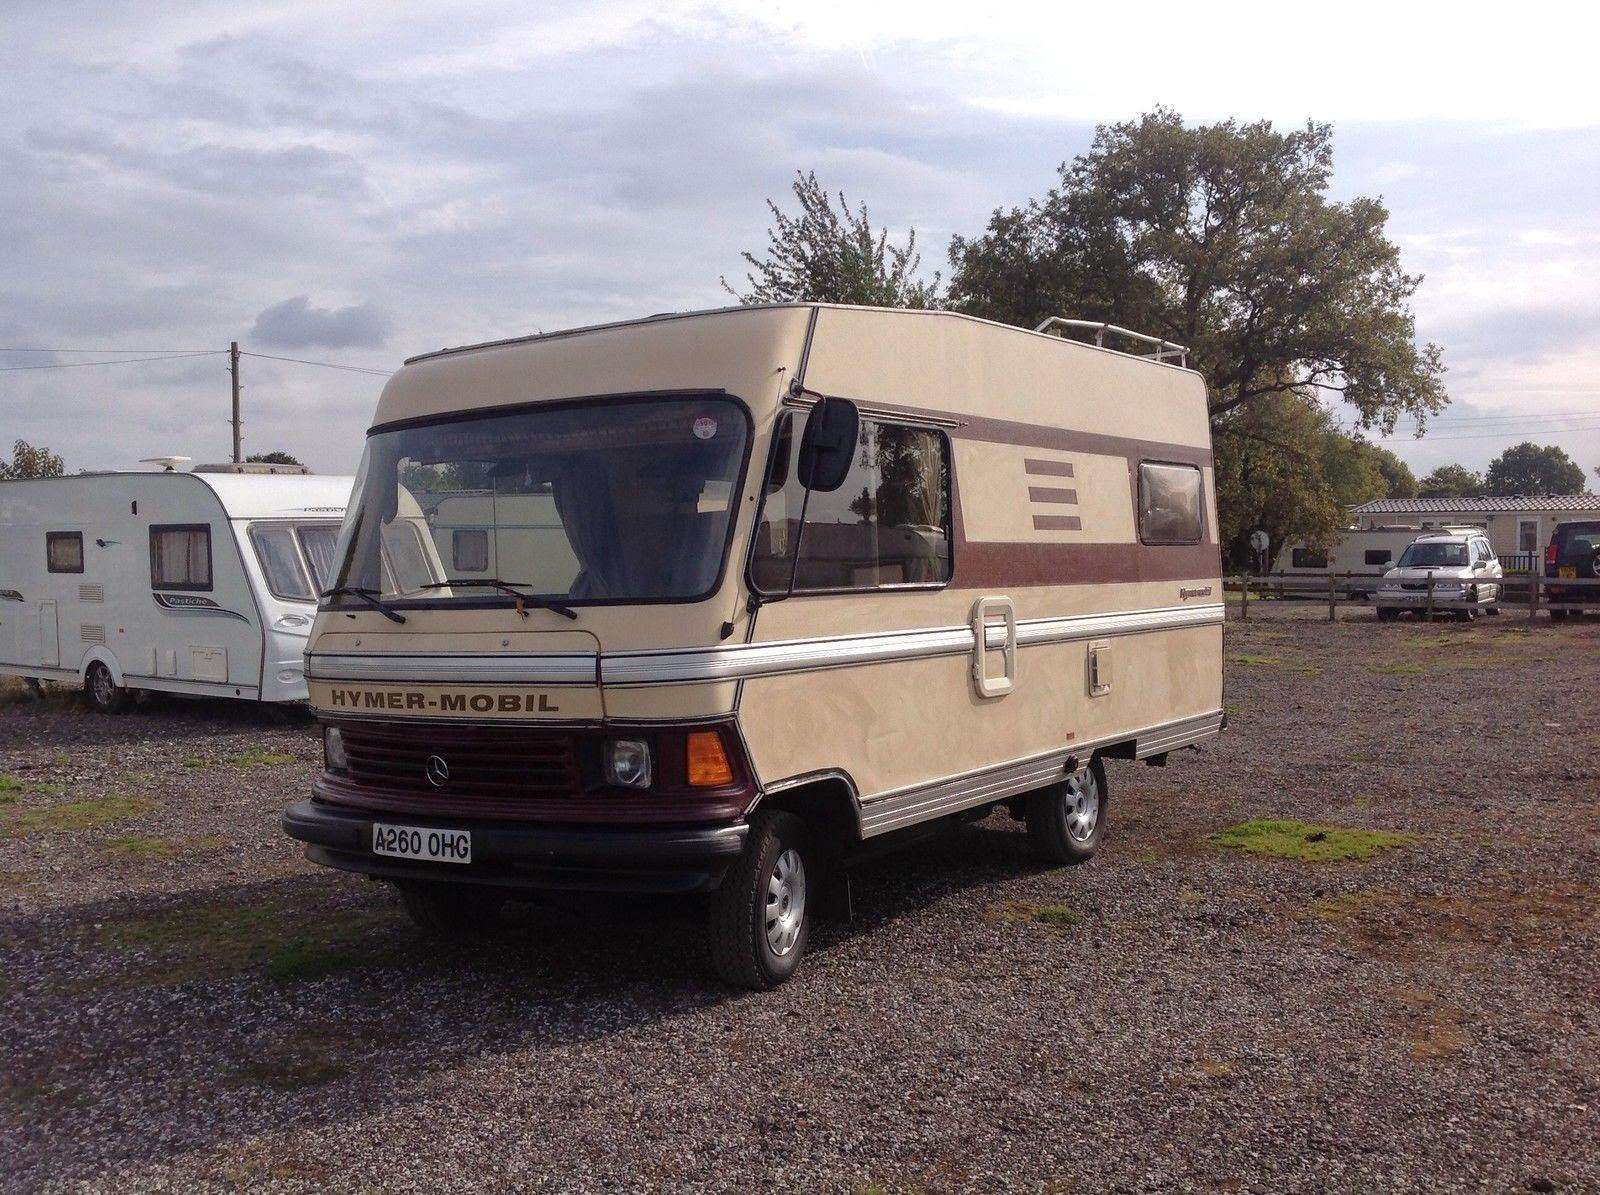 used rvs 1983 hymer motorhome for sale for sale by owner